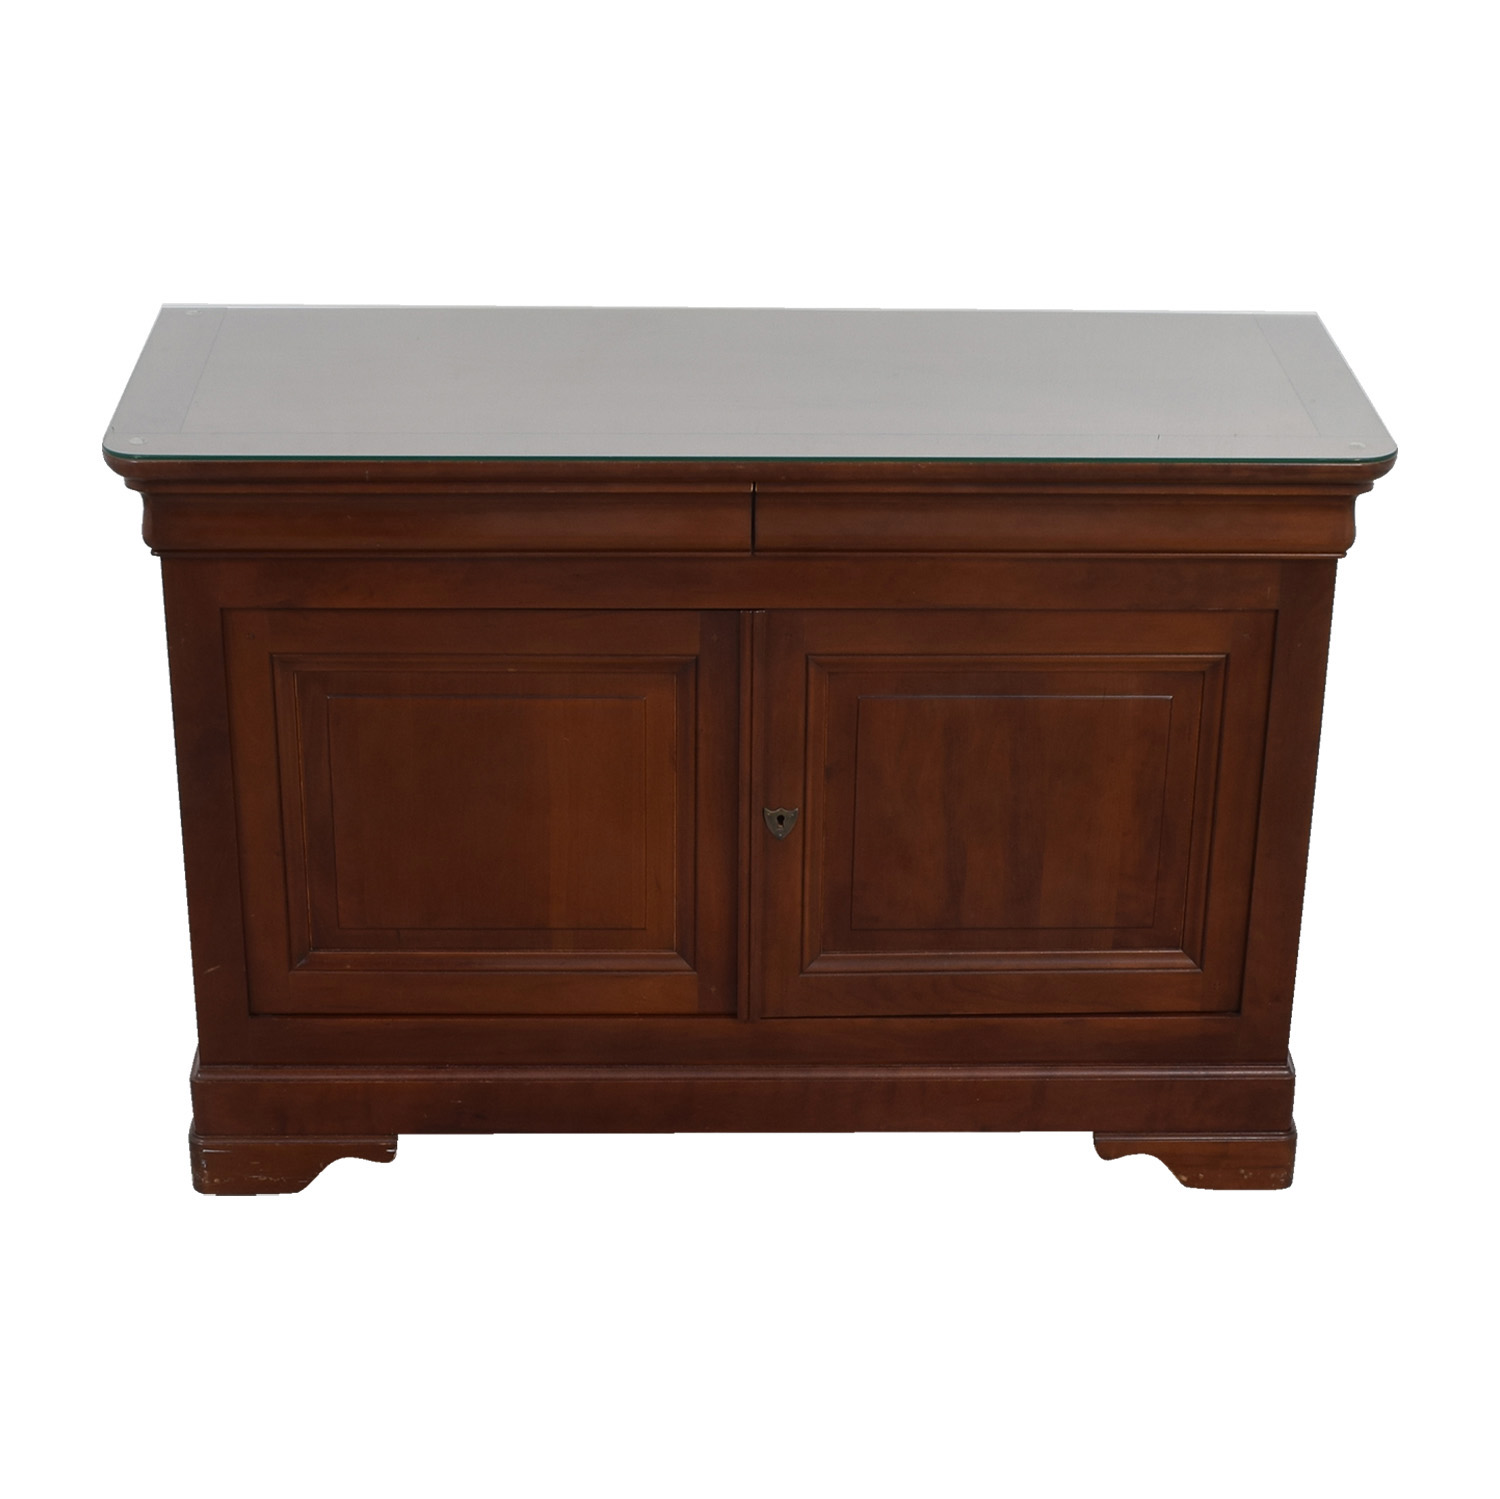 Grange Wood Serving & Storage Buffet / Tables